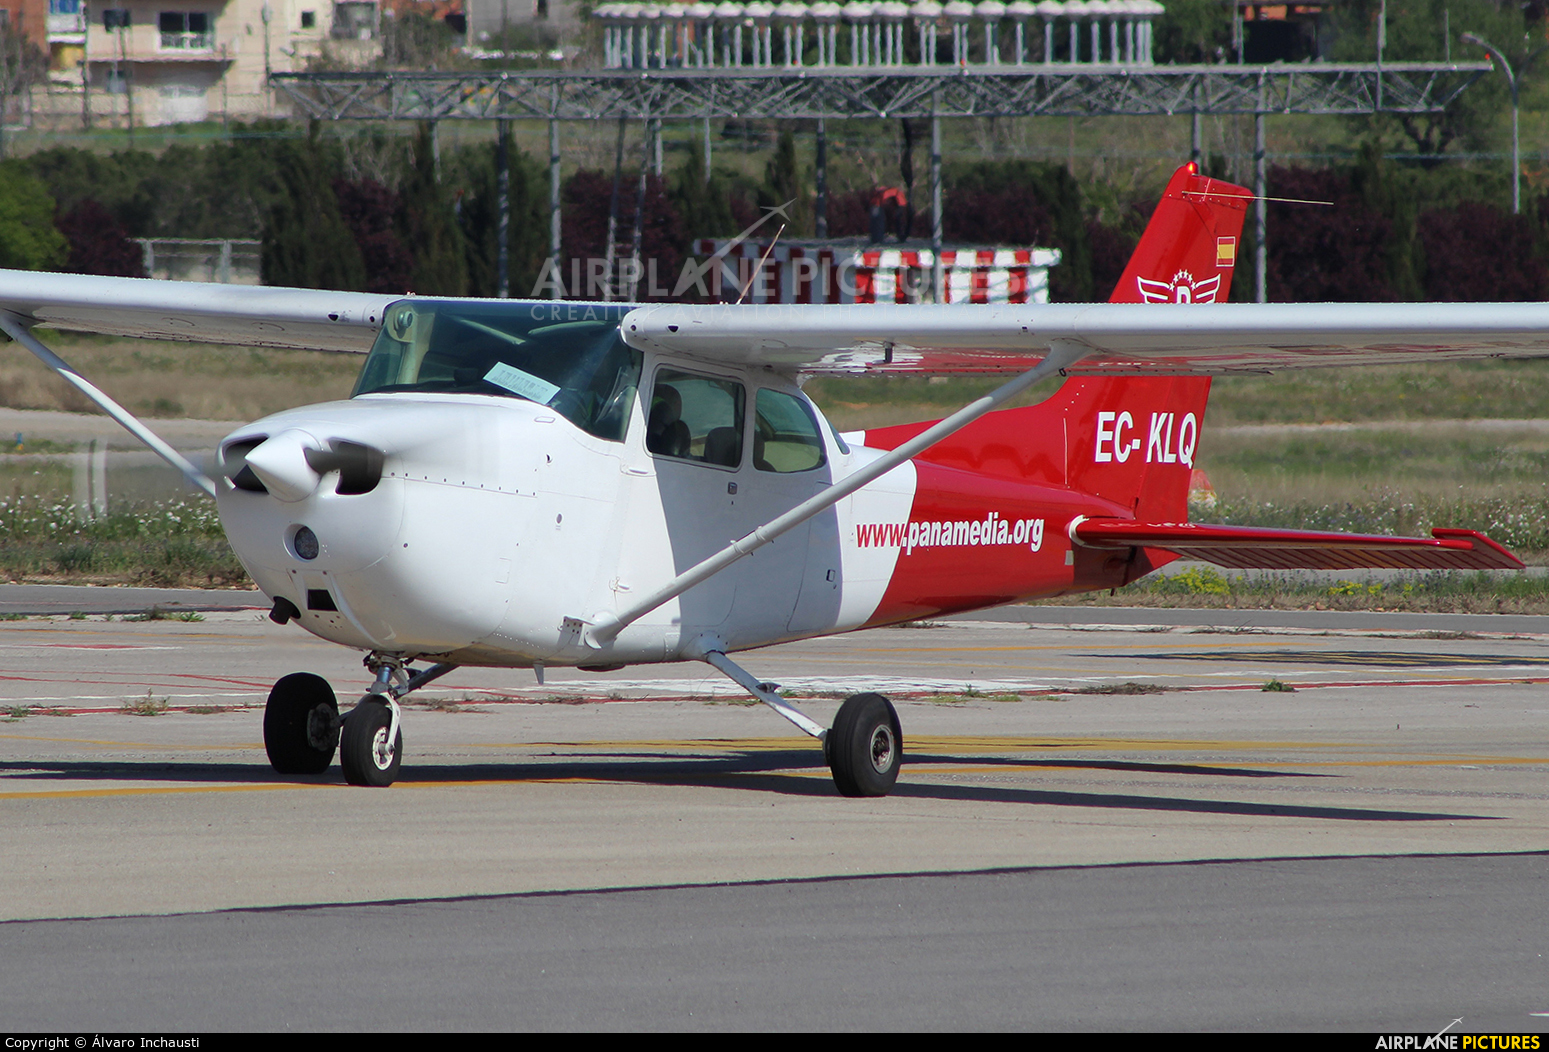 Panamedia Intl. Flight School EC-KLQ aircraft at Reus